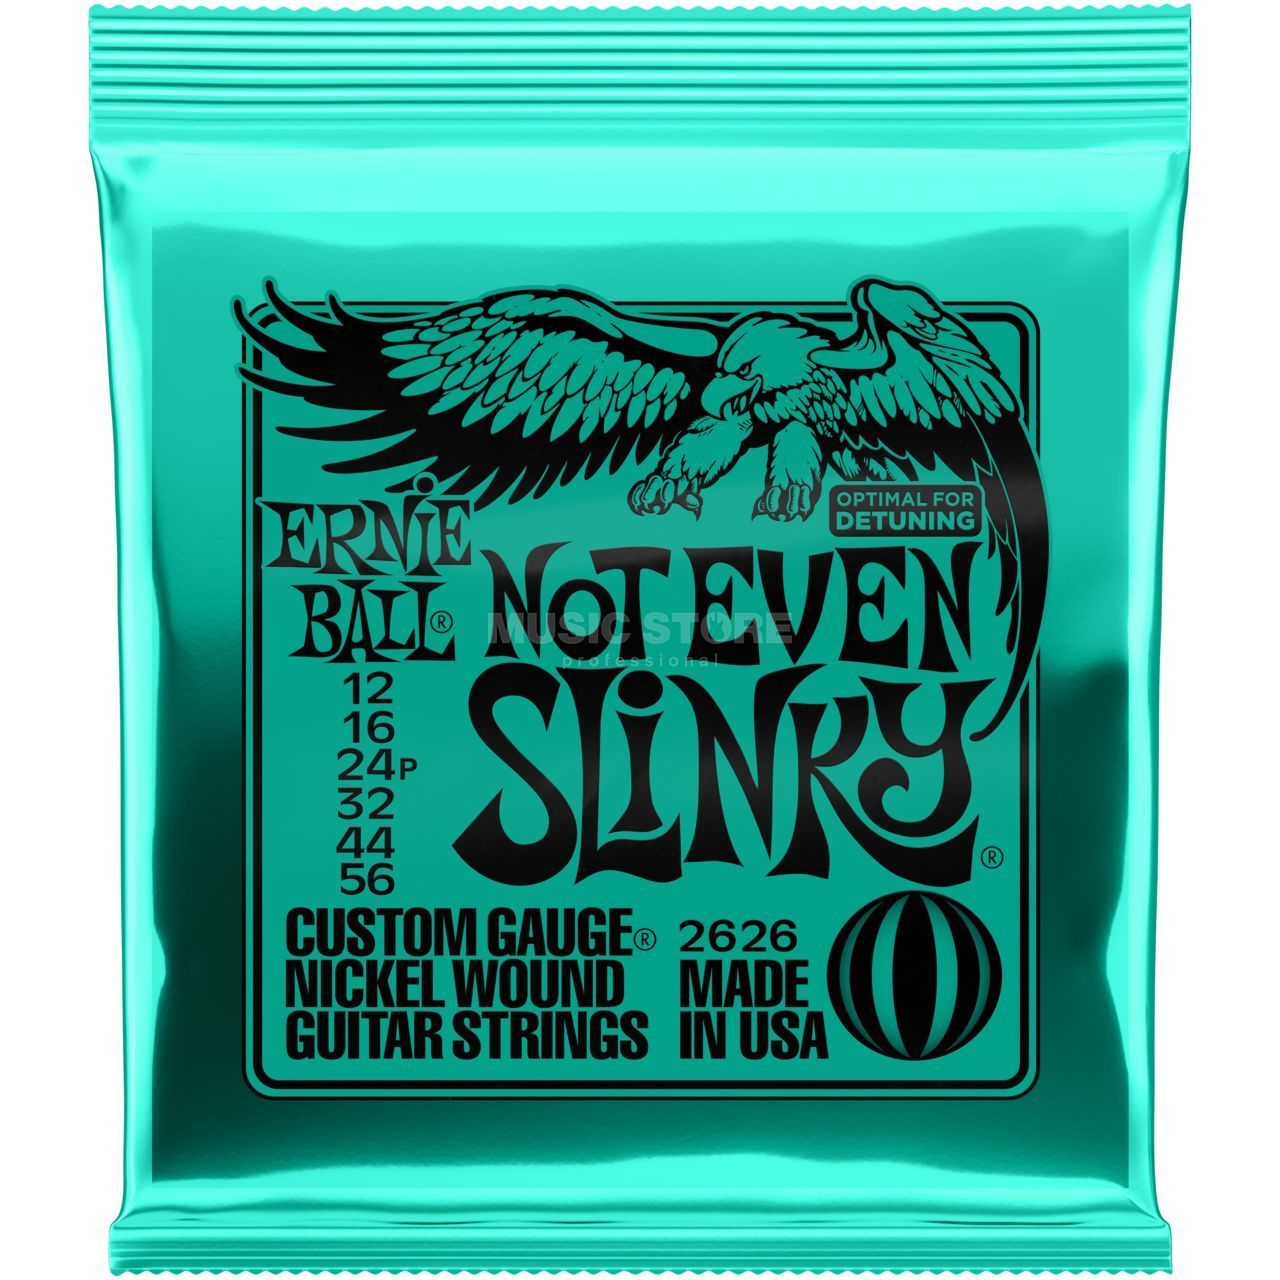 Nickel wound Струны для электрогитары ERNIE BALL 2626 (12-16-24p-32-44-56)